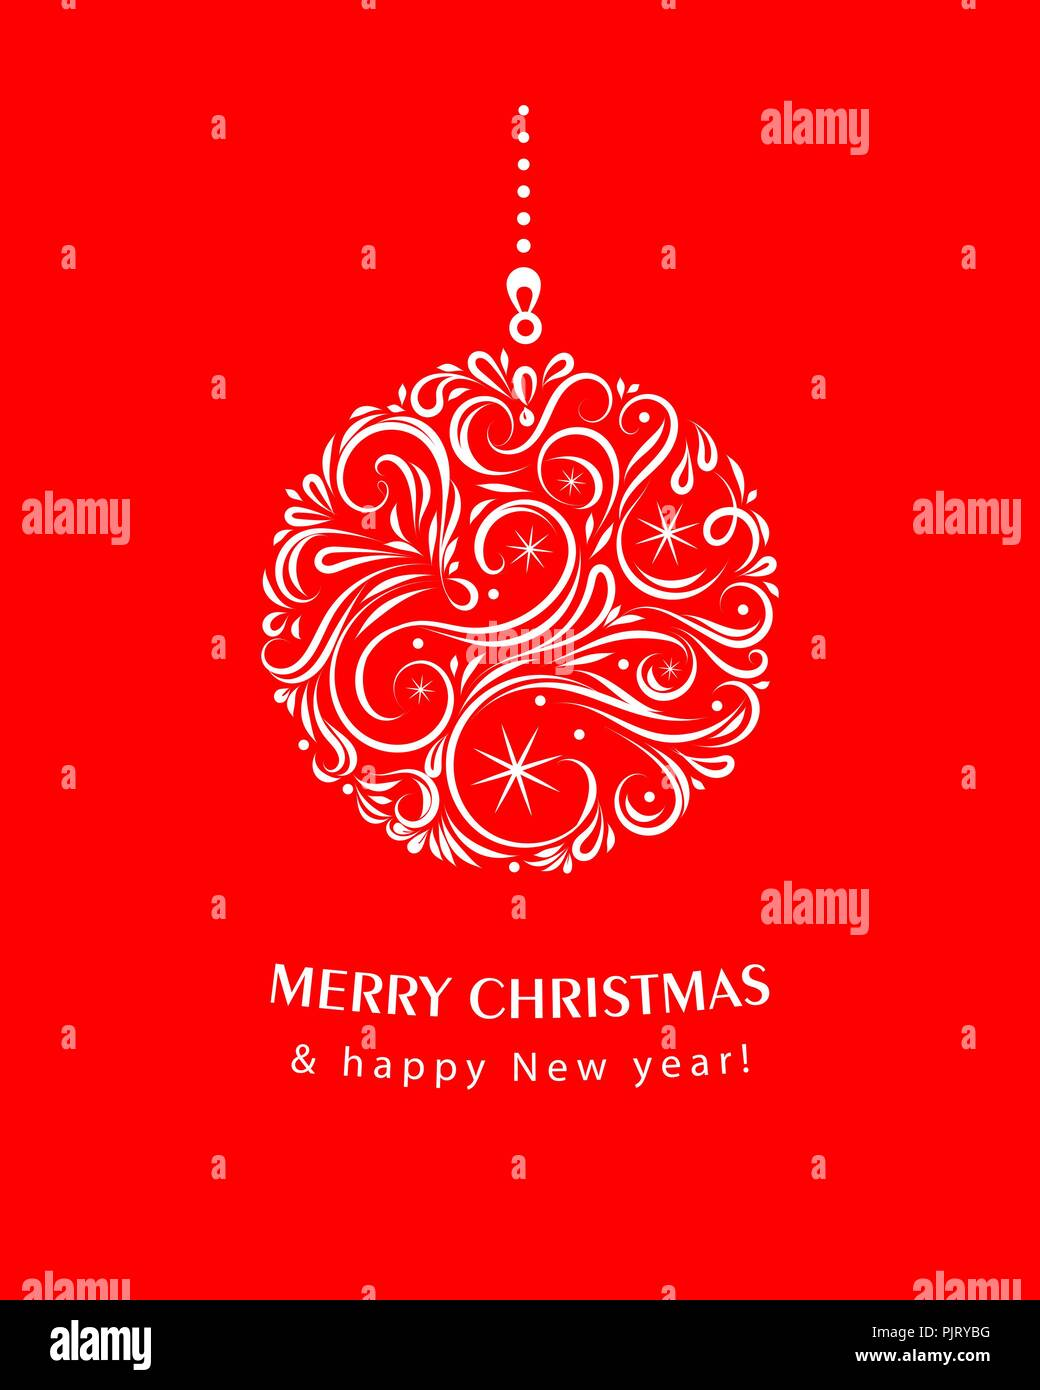 White christmas ball on red background eps 10 vector illustration white christmas ball on red background eps 10 vector illustration usable for banners greeting cards gifts etc ector christmas greeting card with m4hsunfo